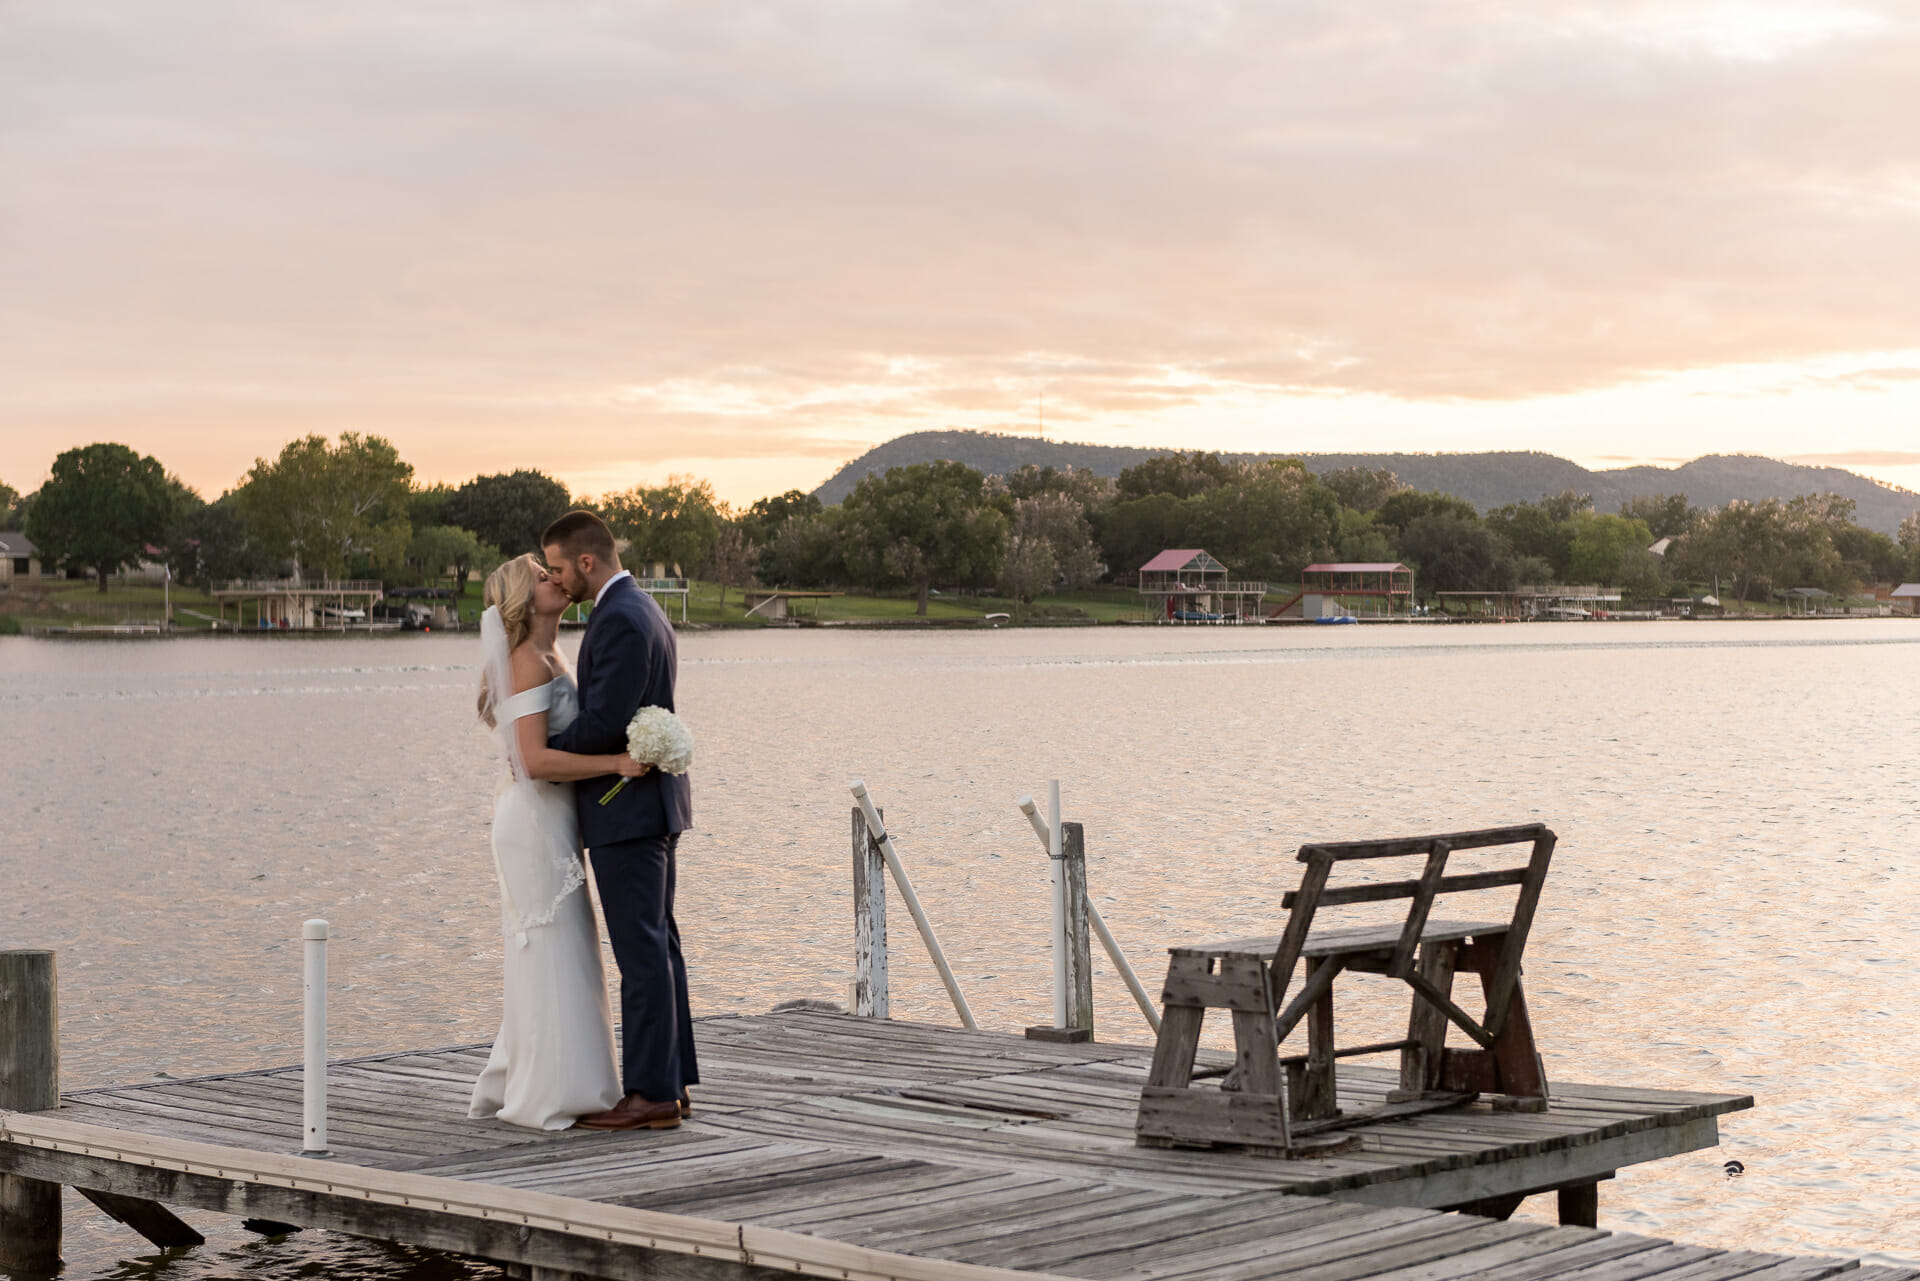 Wedding Photography by Dustin Meyer | Elizabeth and Kyle